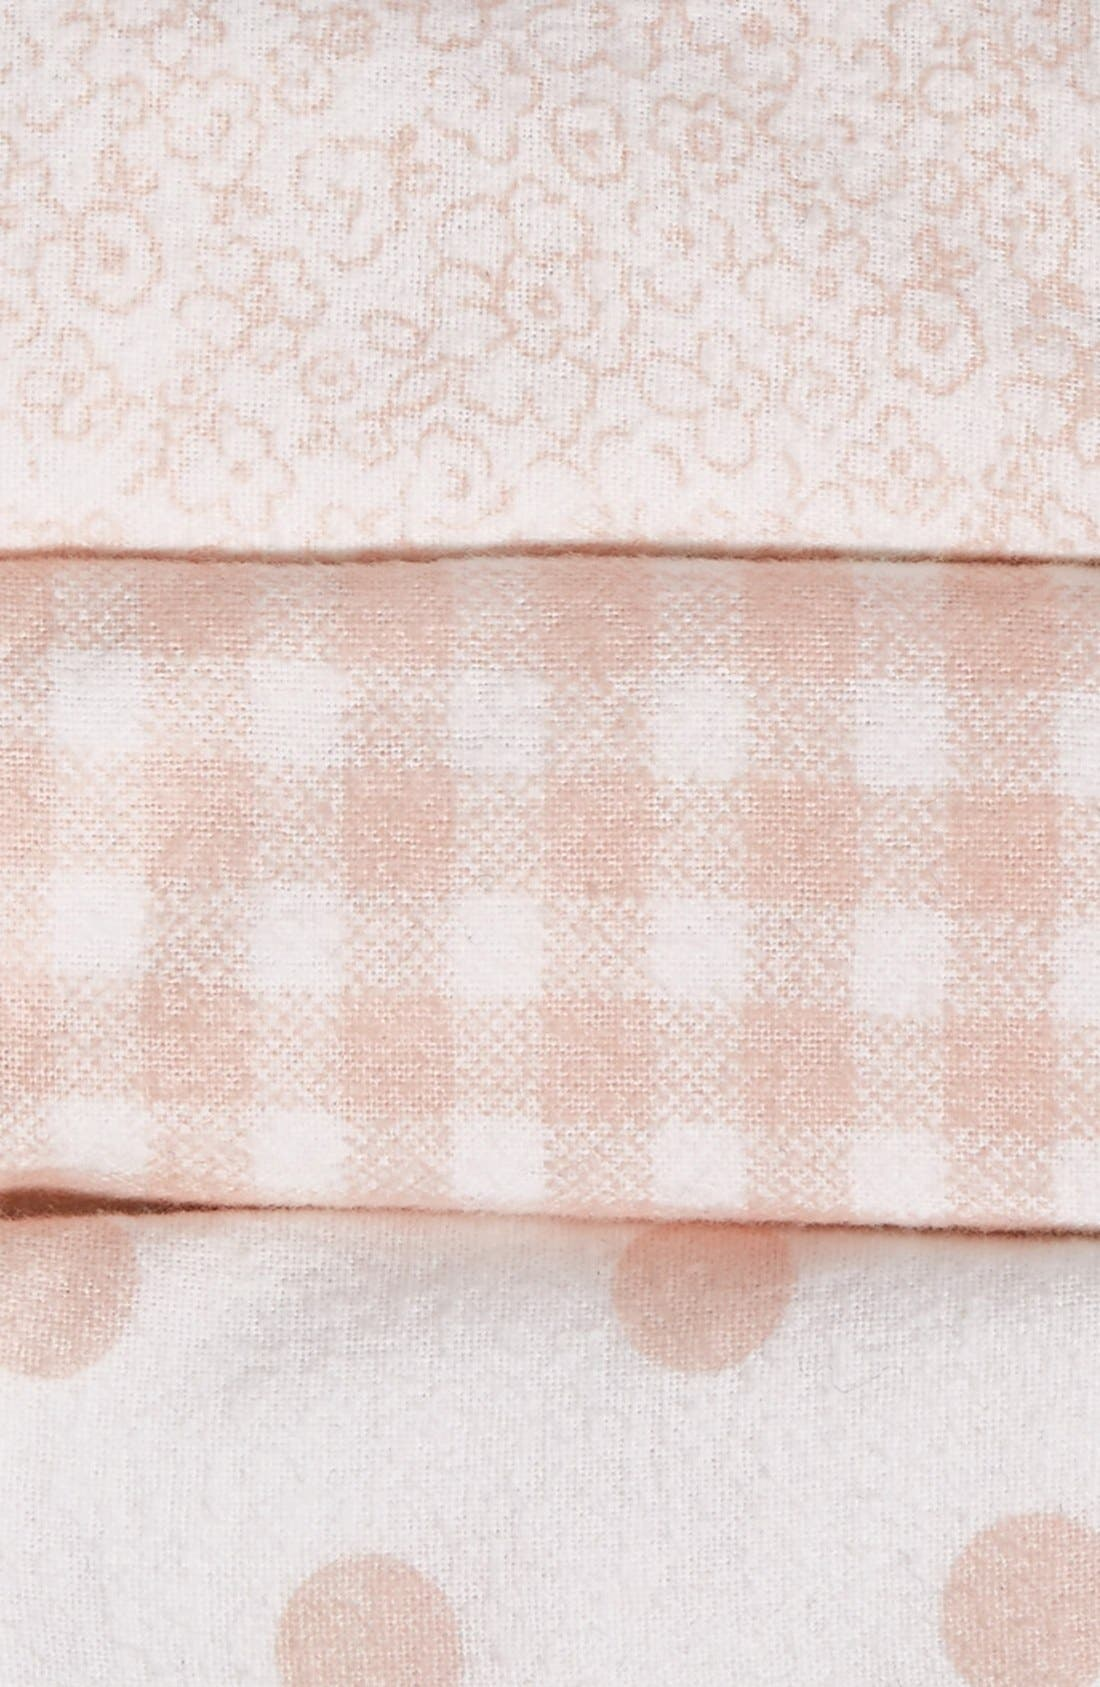 Alternate Image 3  - Nordstrom Baby Cotton Flannel Swaddles (3-Pack)